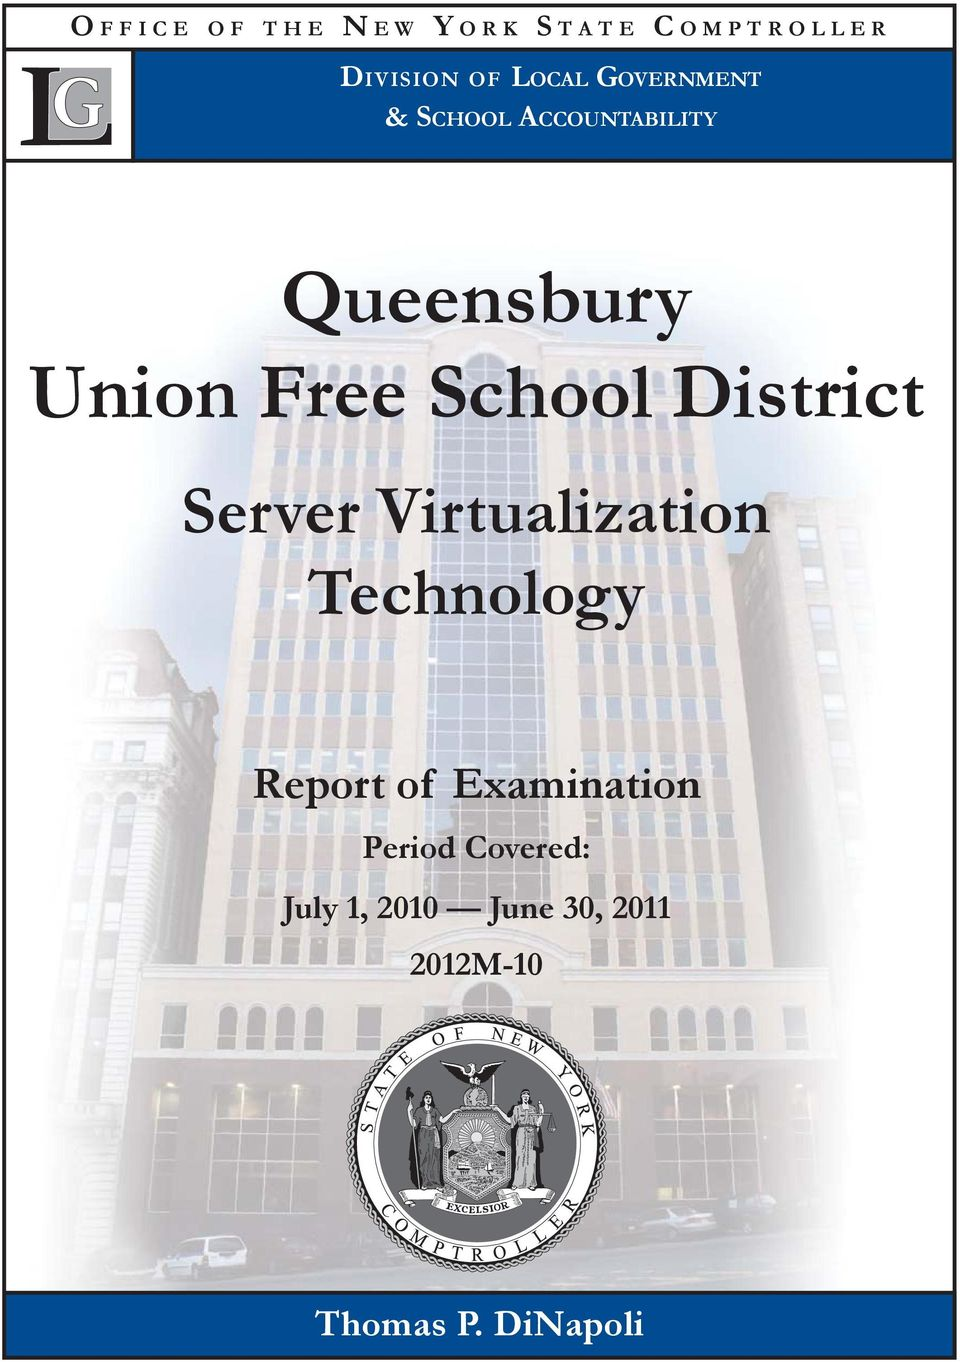 District Server Virtualization Technology Report of Examination